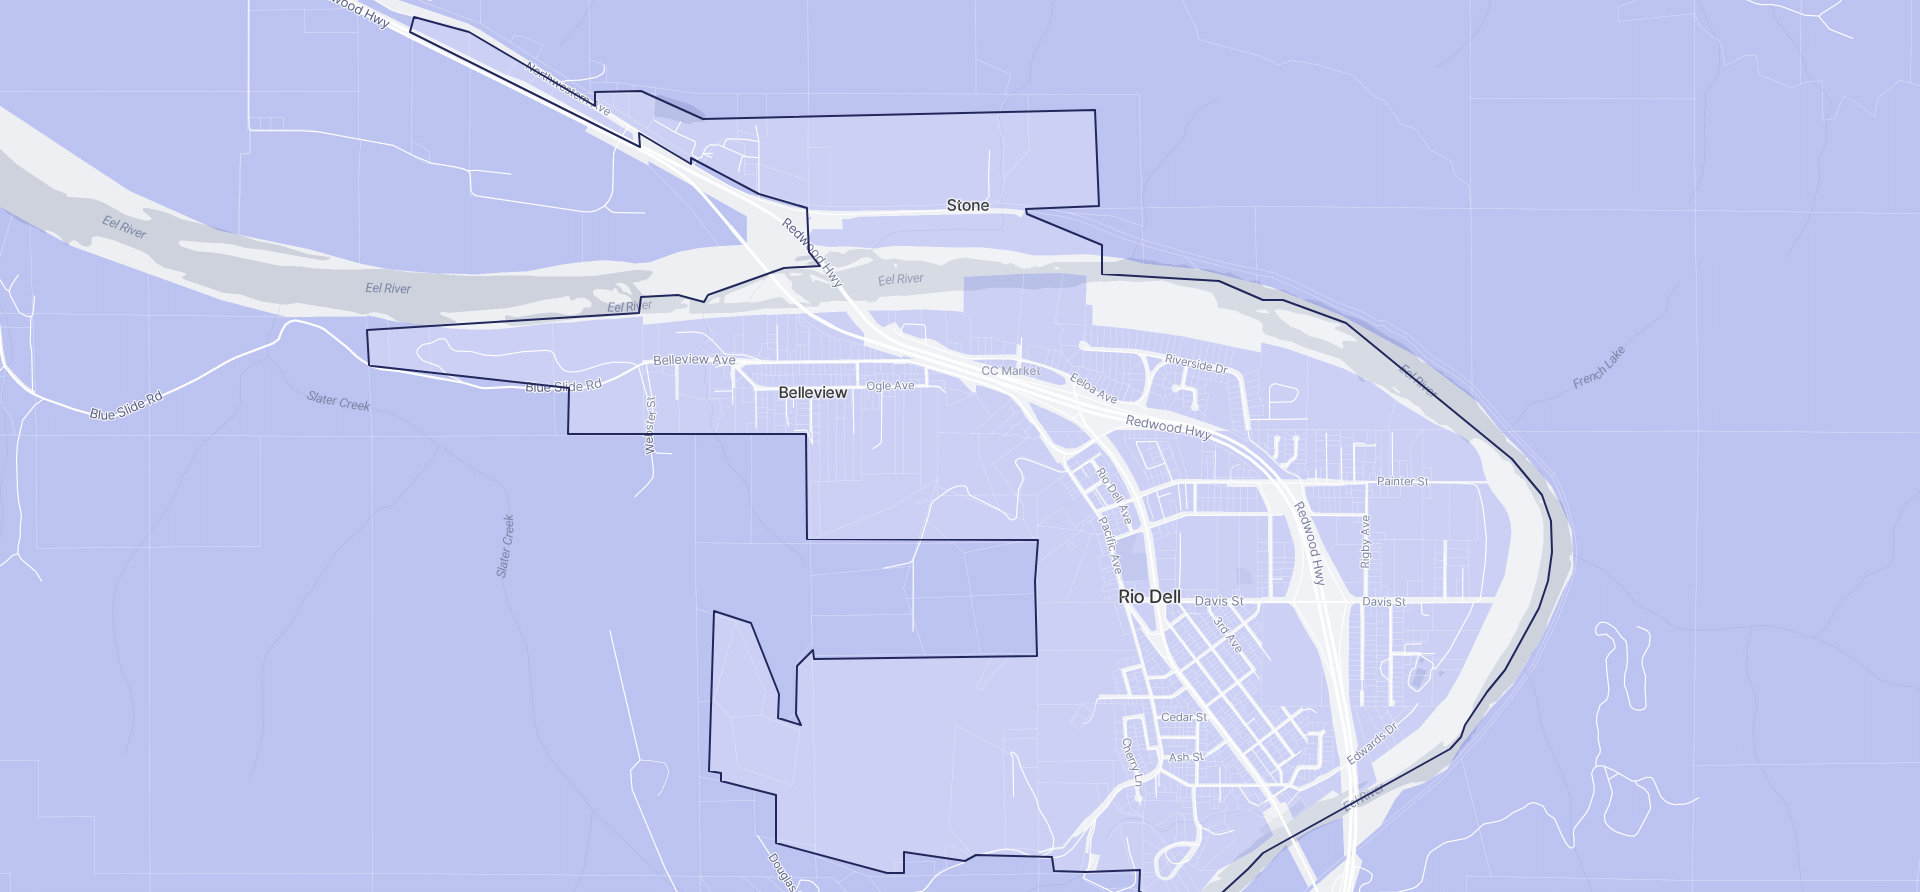 Image of Rio Dell boundaries on a map.